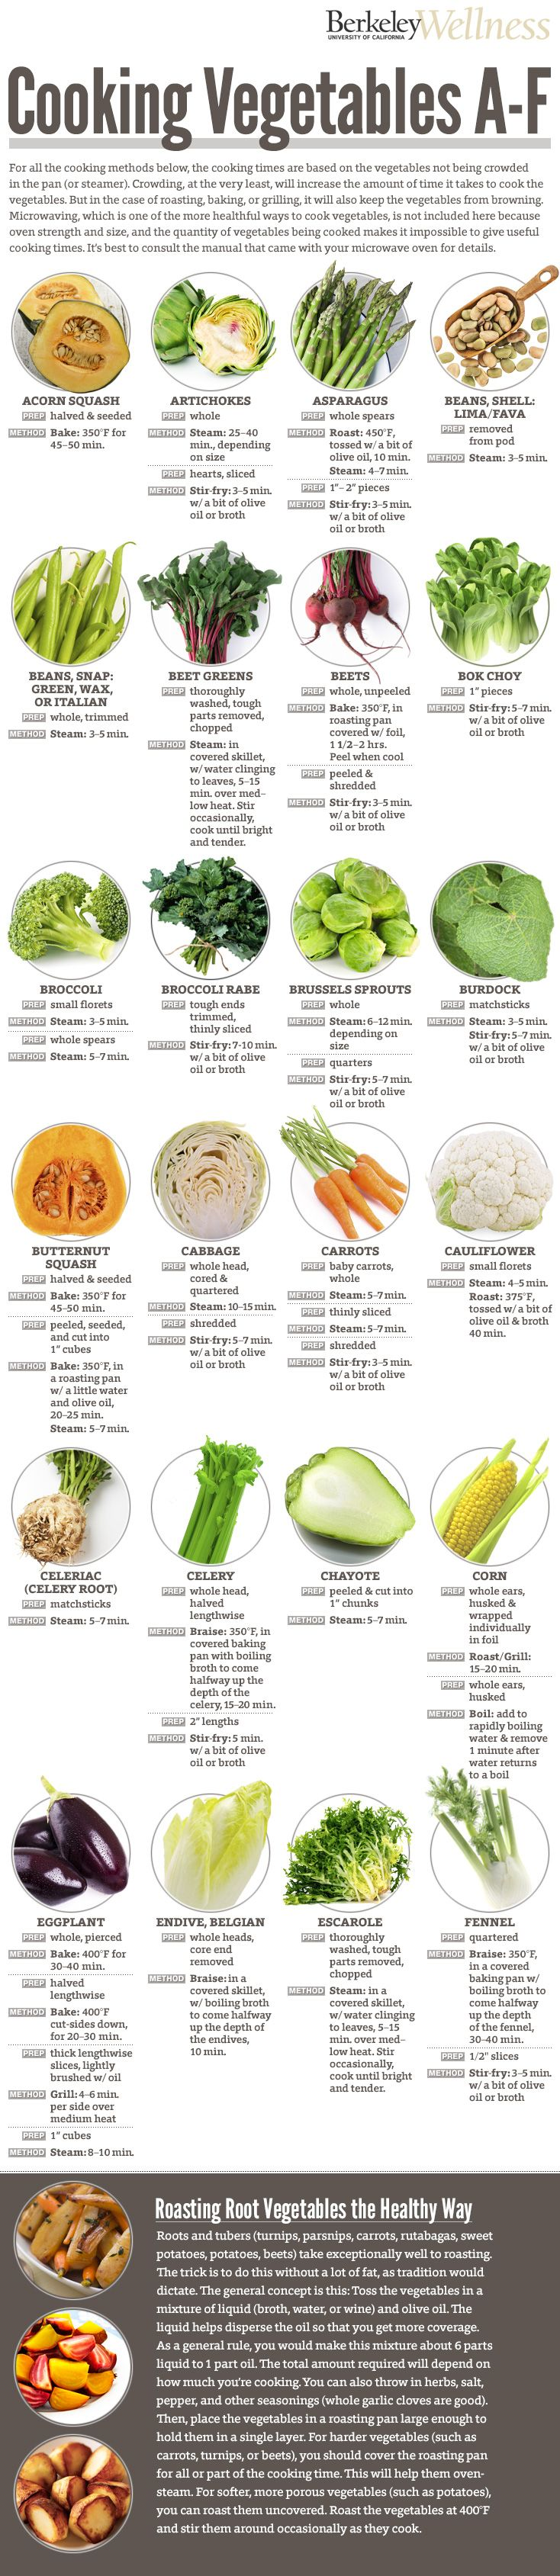 How to Cook Vegetables in healthy ways from Acorn squash to Fennel, and everything in between.